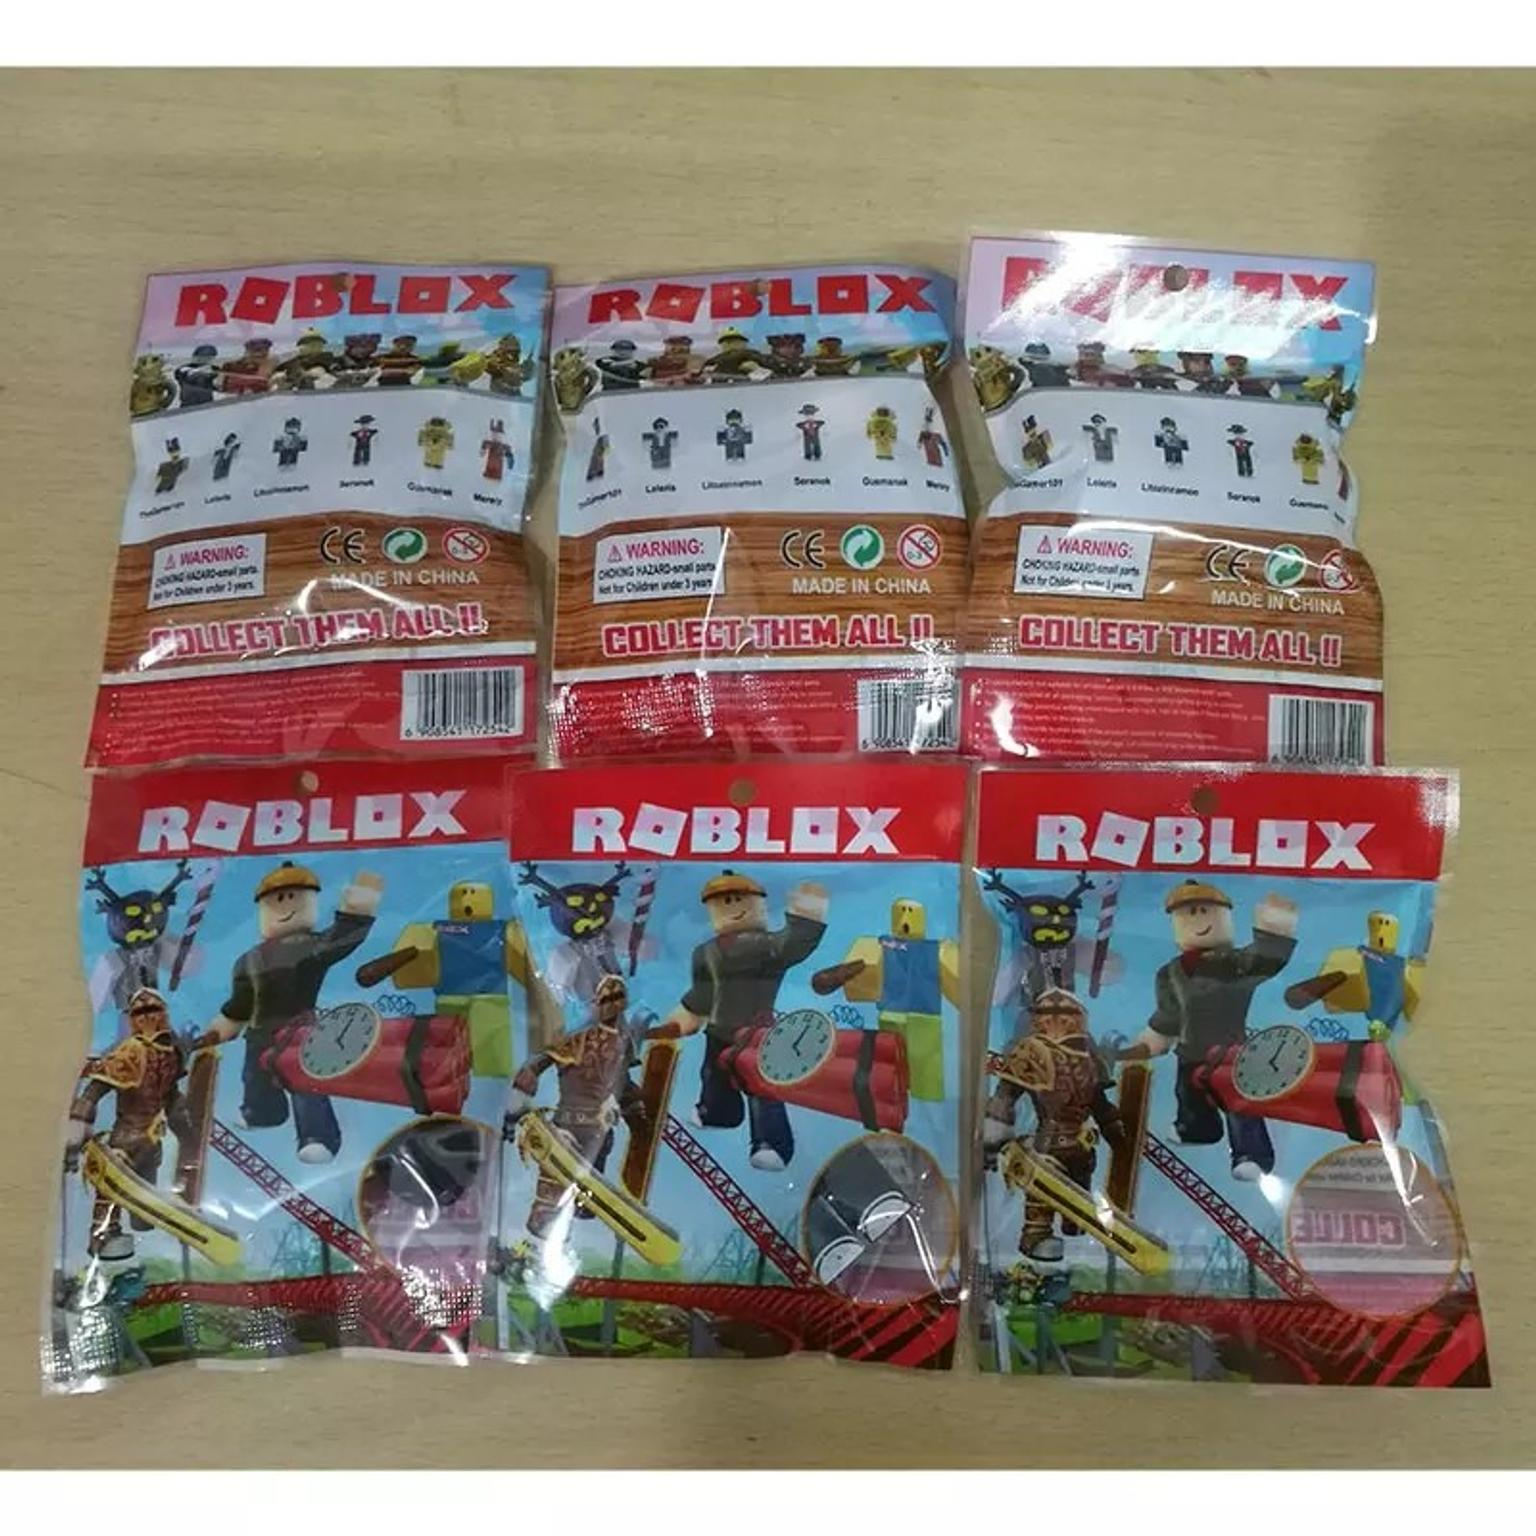 6 pack of roblox figures